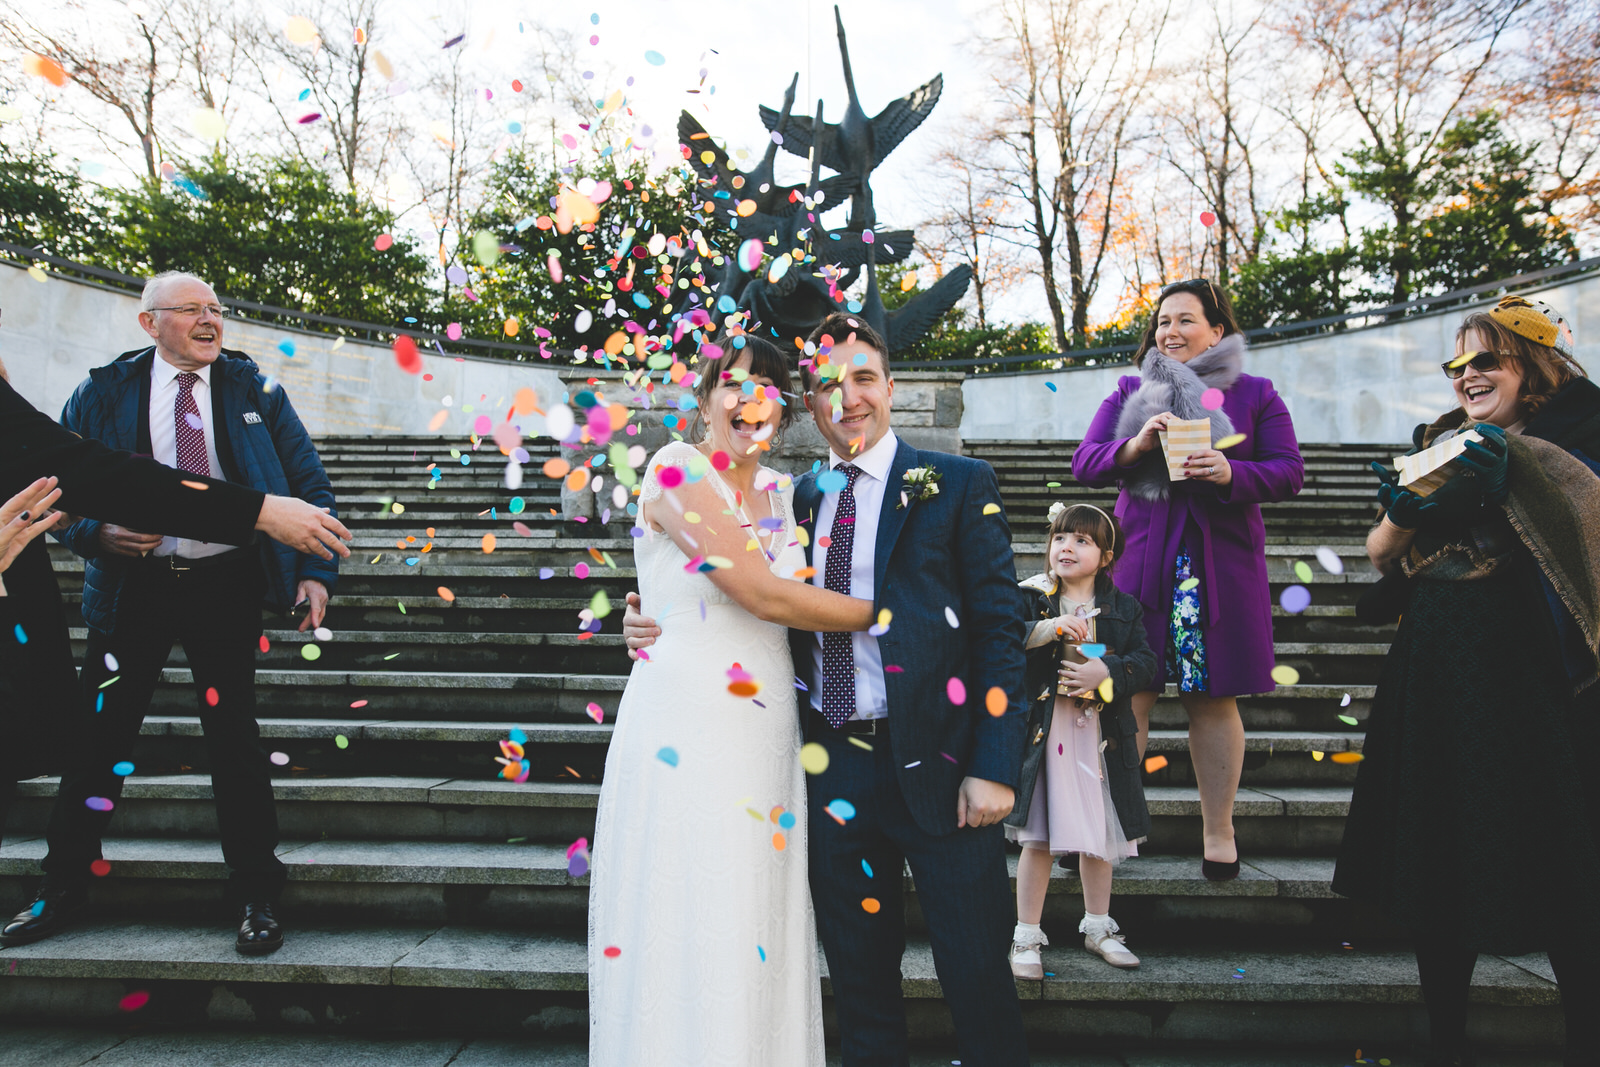 Confetti wedding shot at the Garden of Remembrance in Dublin